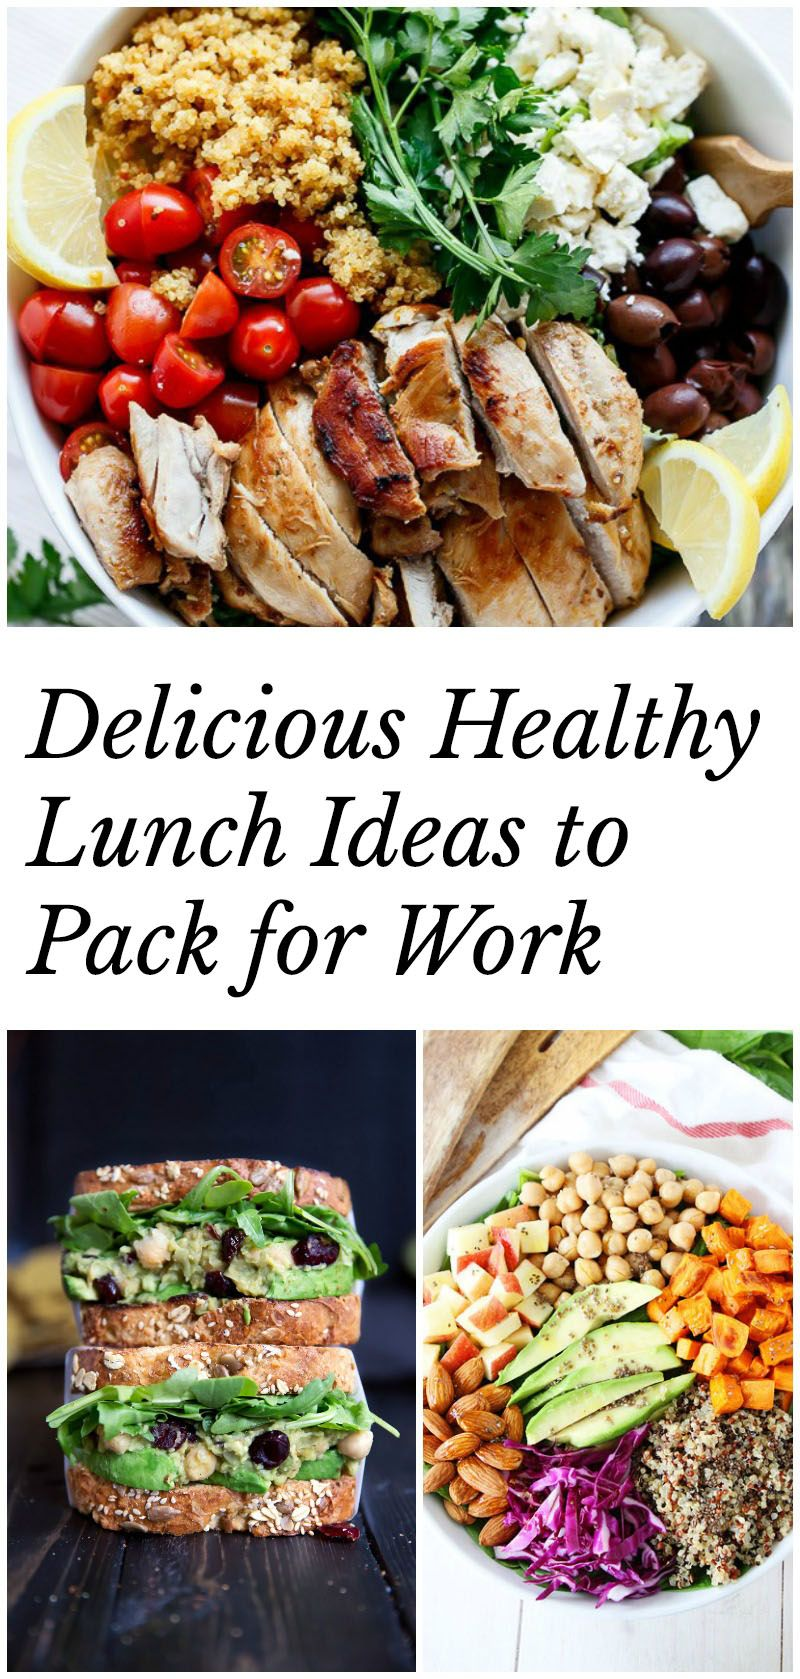 Healthy Lunch Ideas to Pack for Work (40+ recipes!) Food